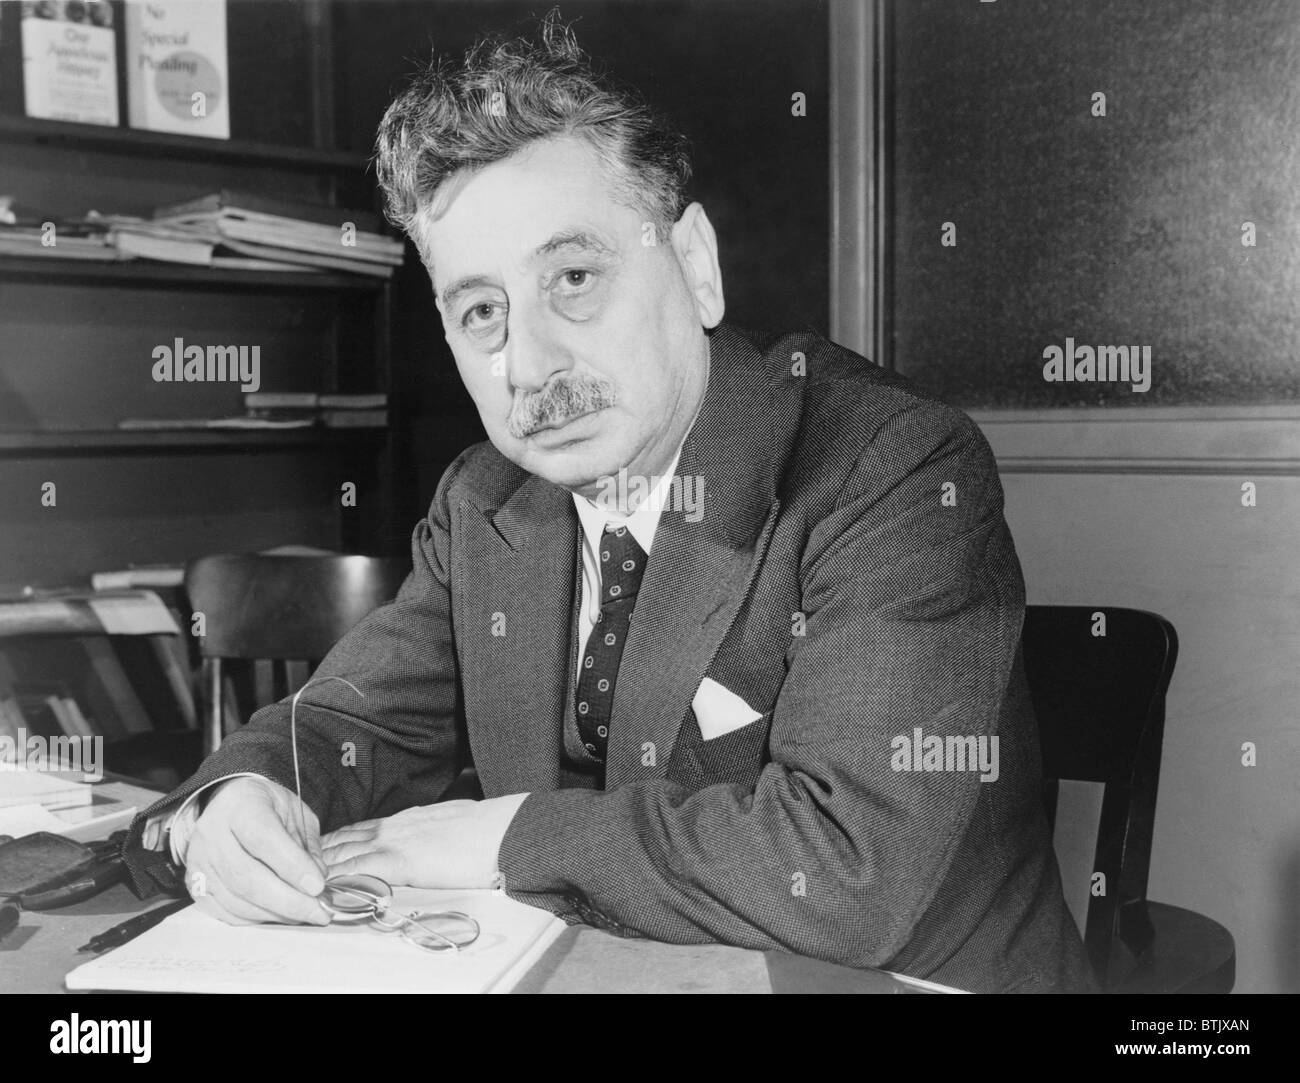 Sholem Asch (1880-1957), Polish born Jewish writer, immigrated to America in 1914, wrote in Yiddish on Jewish identity - Stock Image